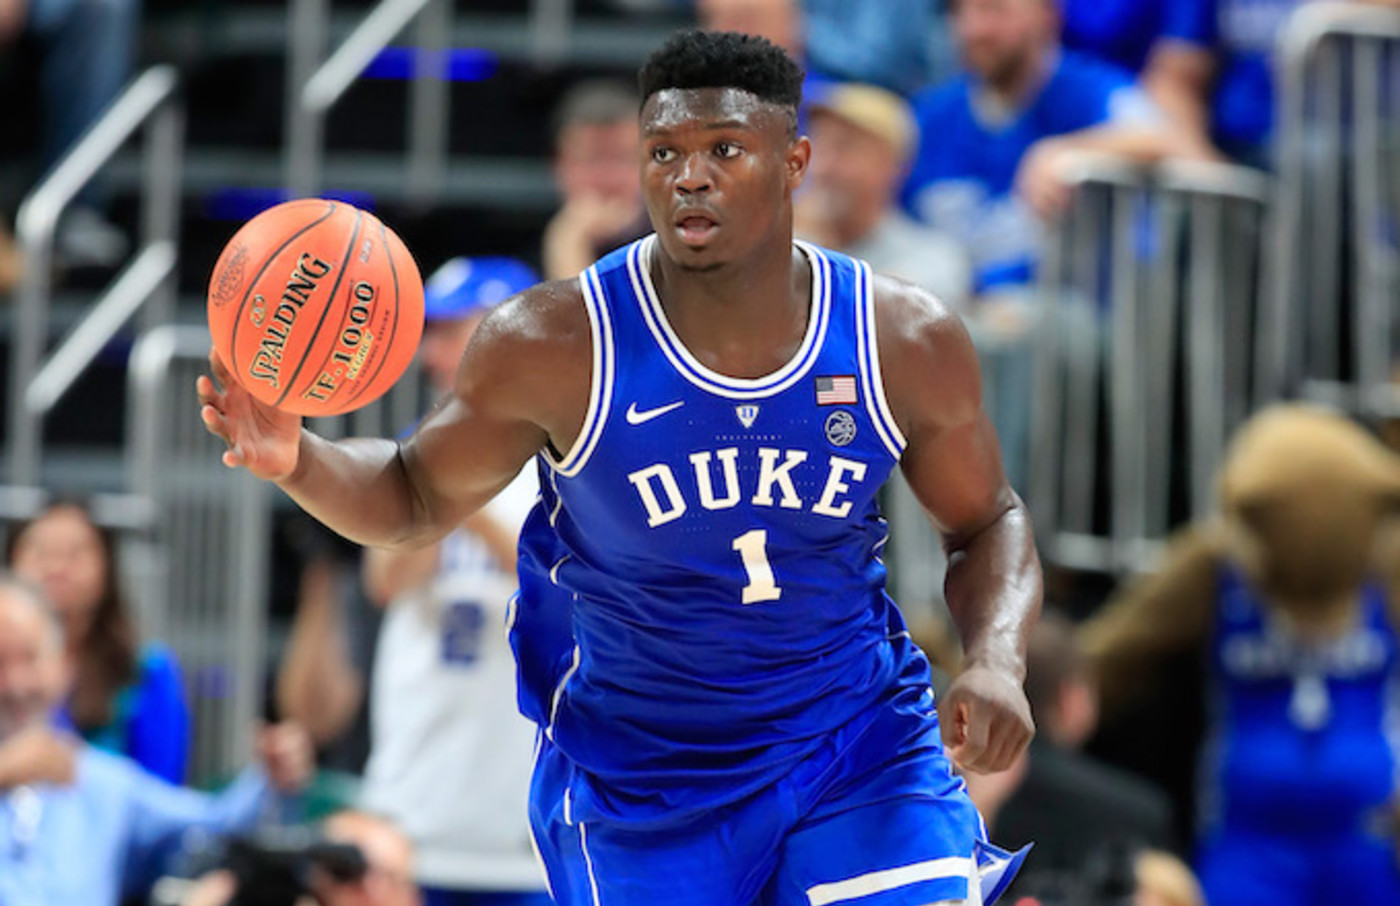 Zion Williamson #1 of the Duke Blue Devils.